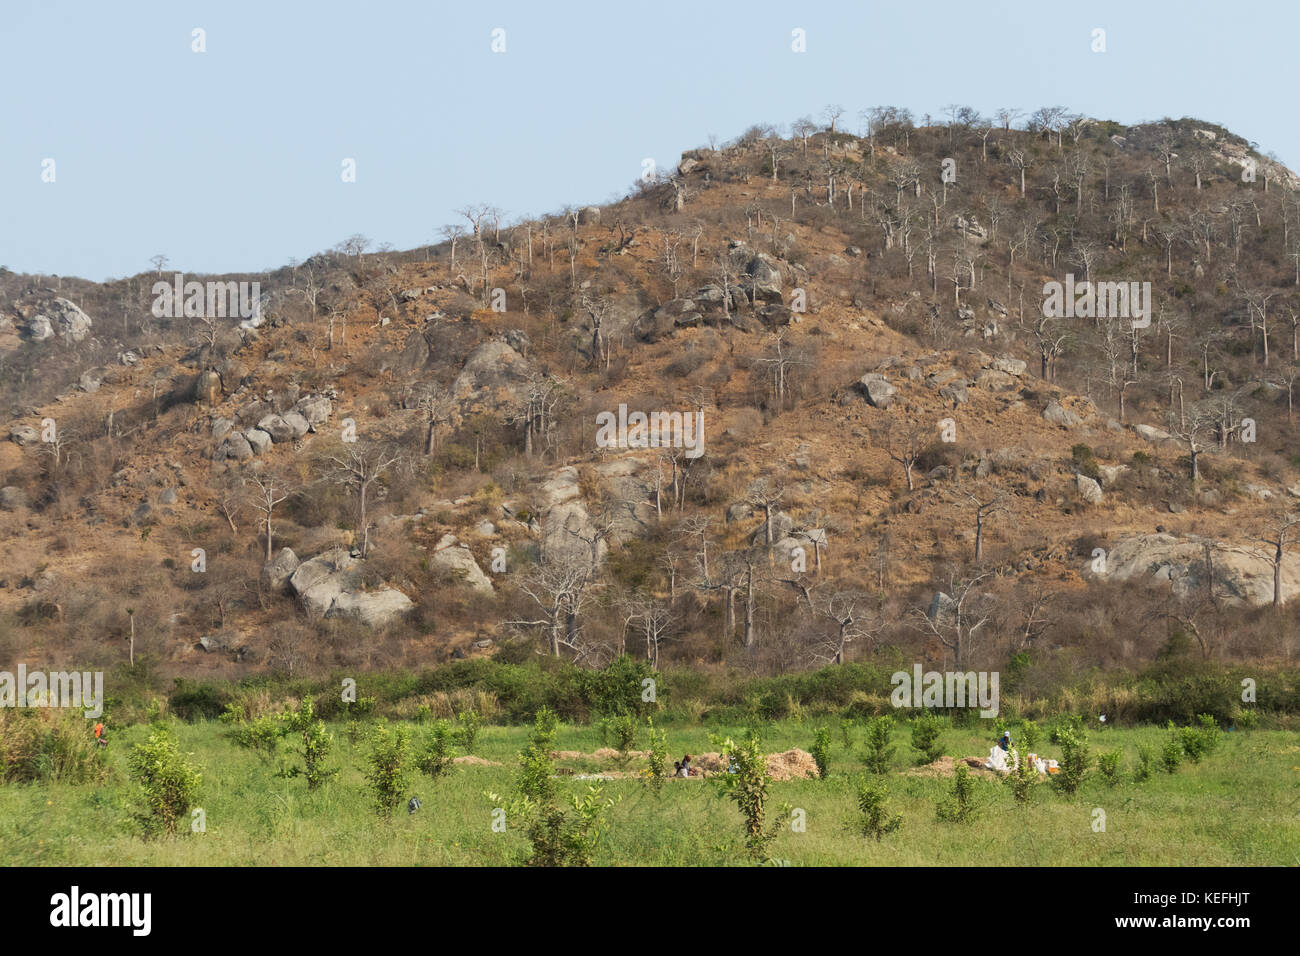 farmers in the field of agriculture. Angola, Stock Photo